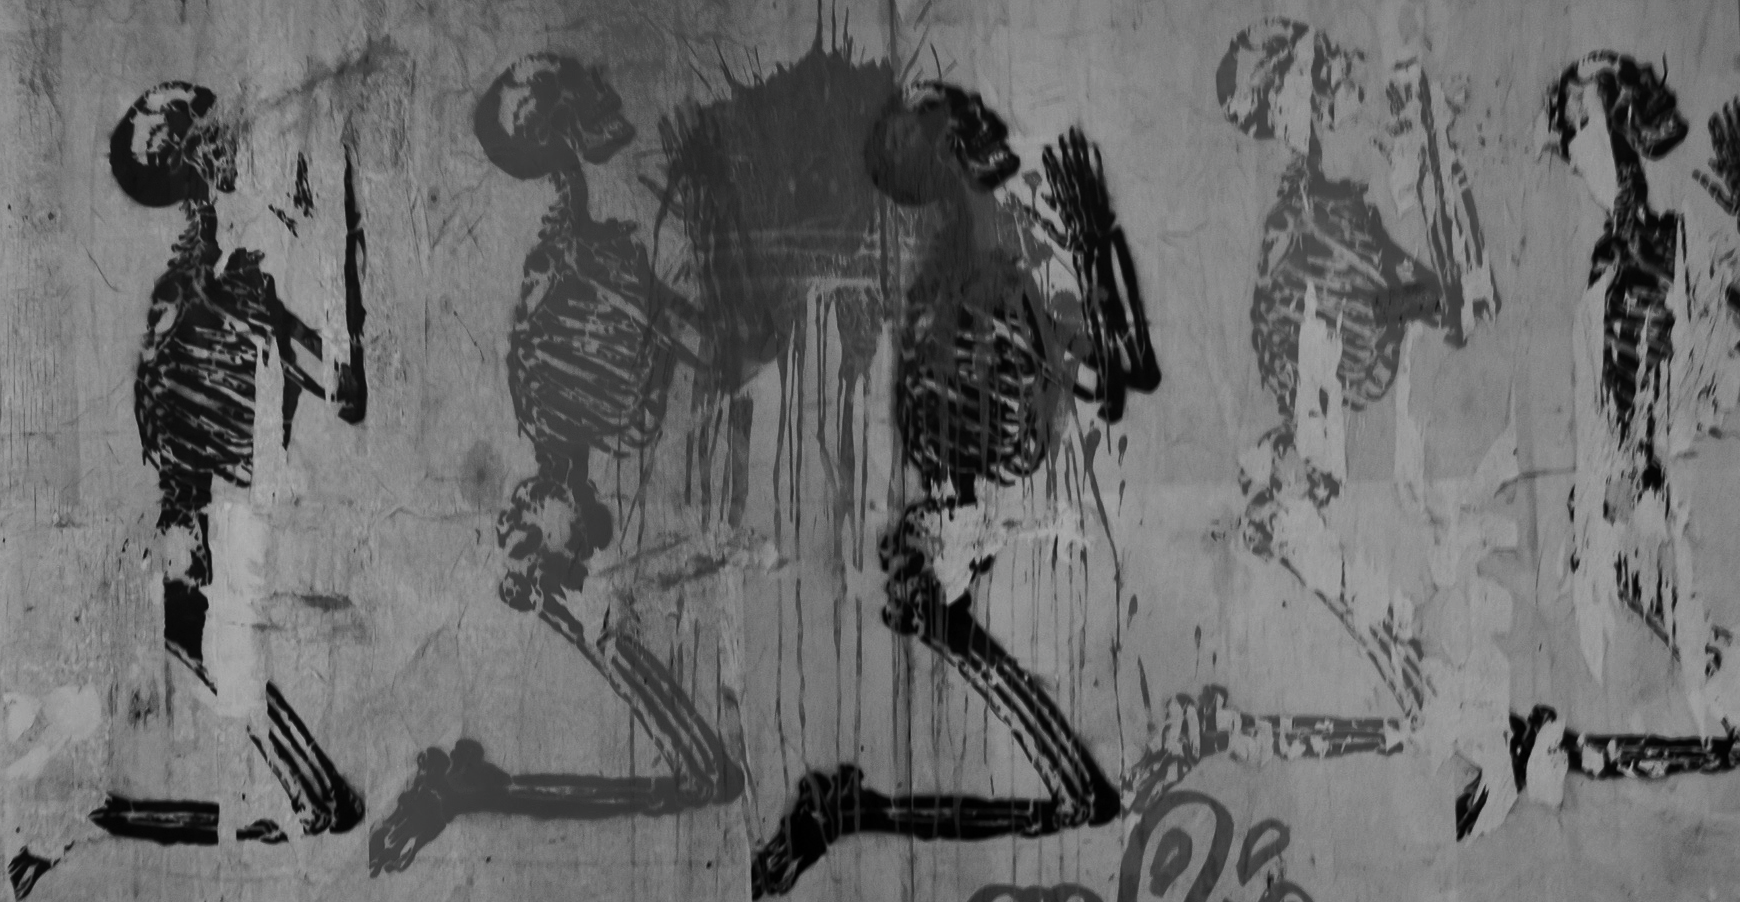 Graffiti depicting William Cheselden's Praying Skeleton, originally printed in Osteographia (1733).